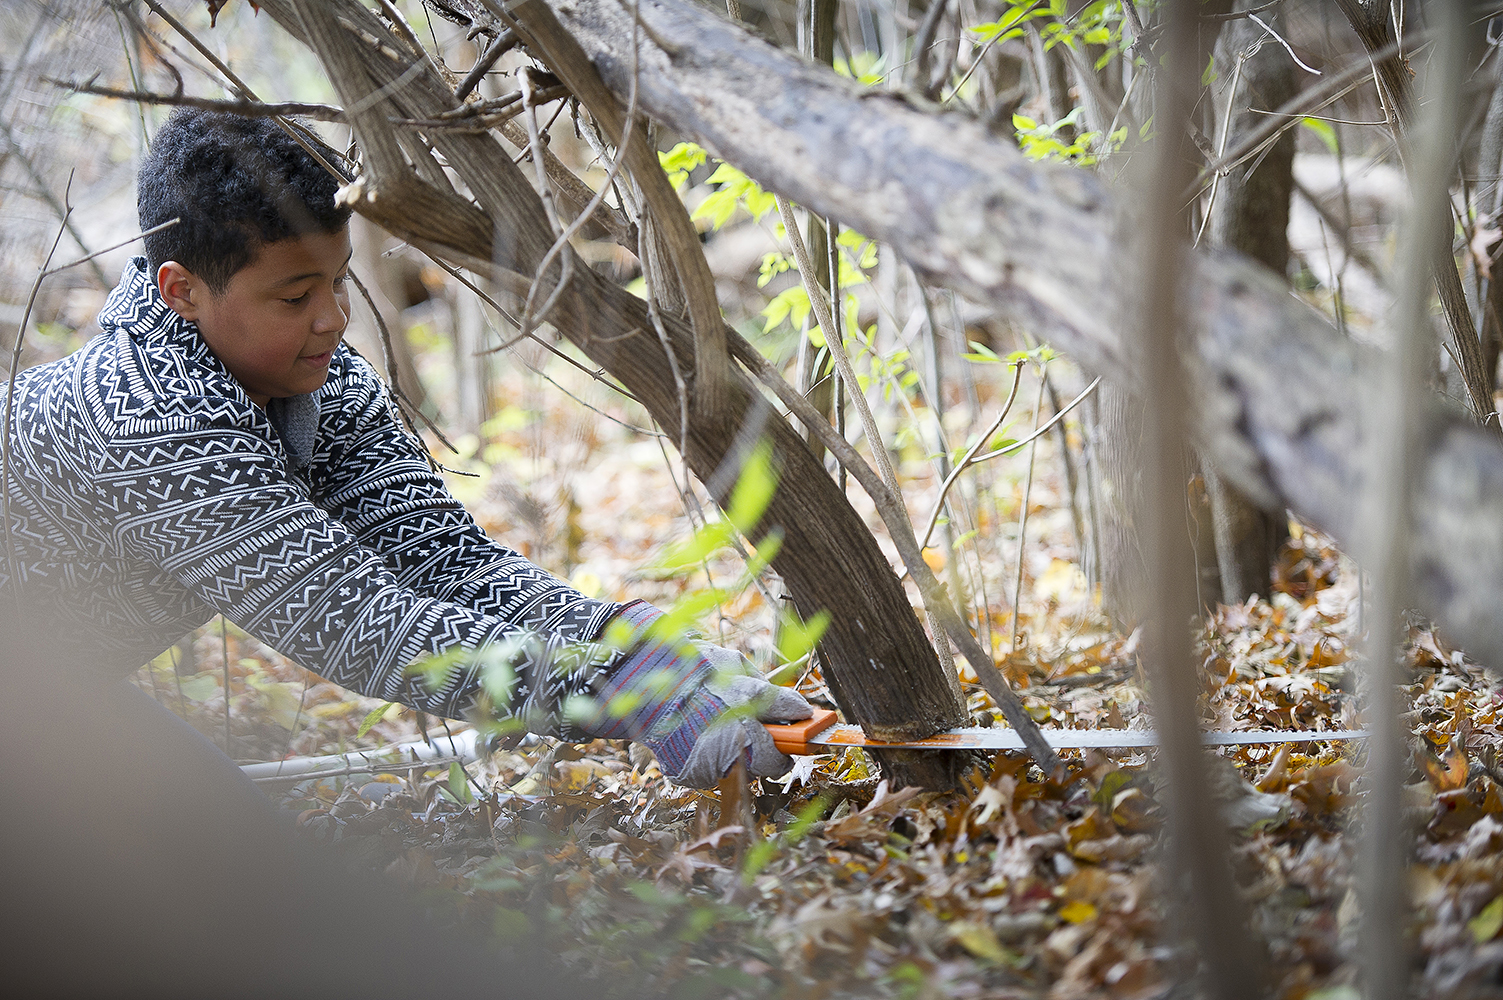 A youngster works to cut an invasive shrub